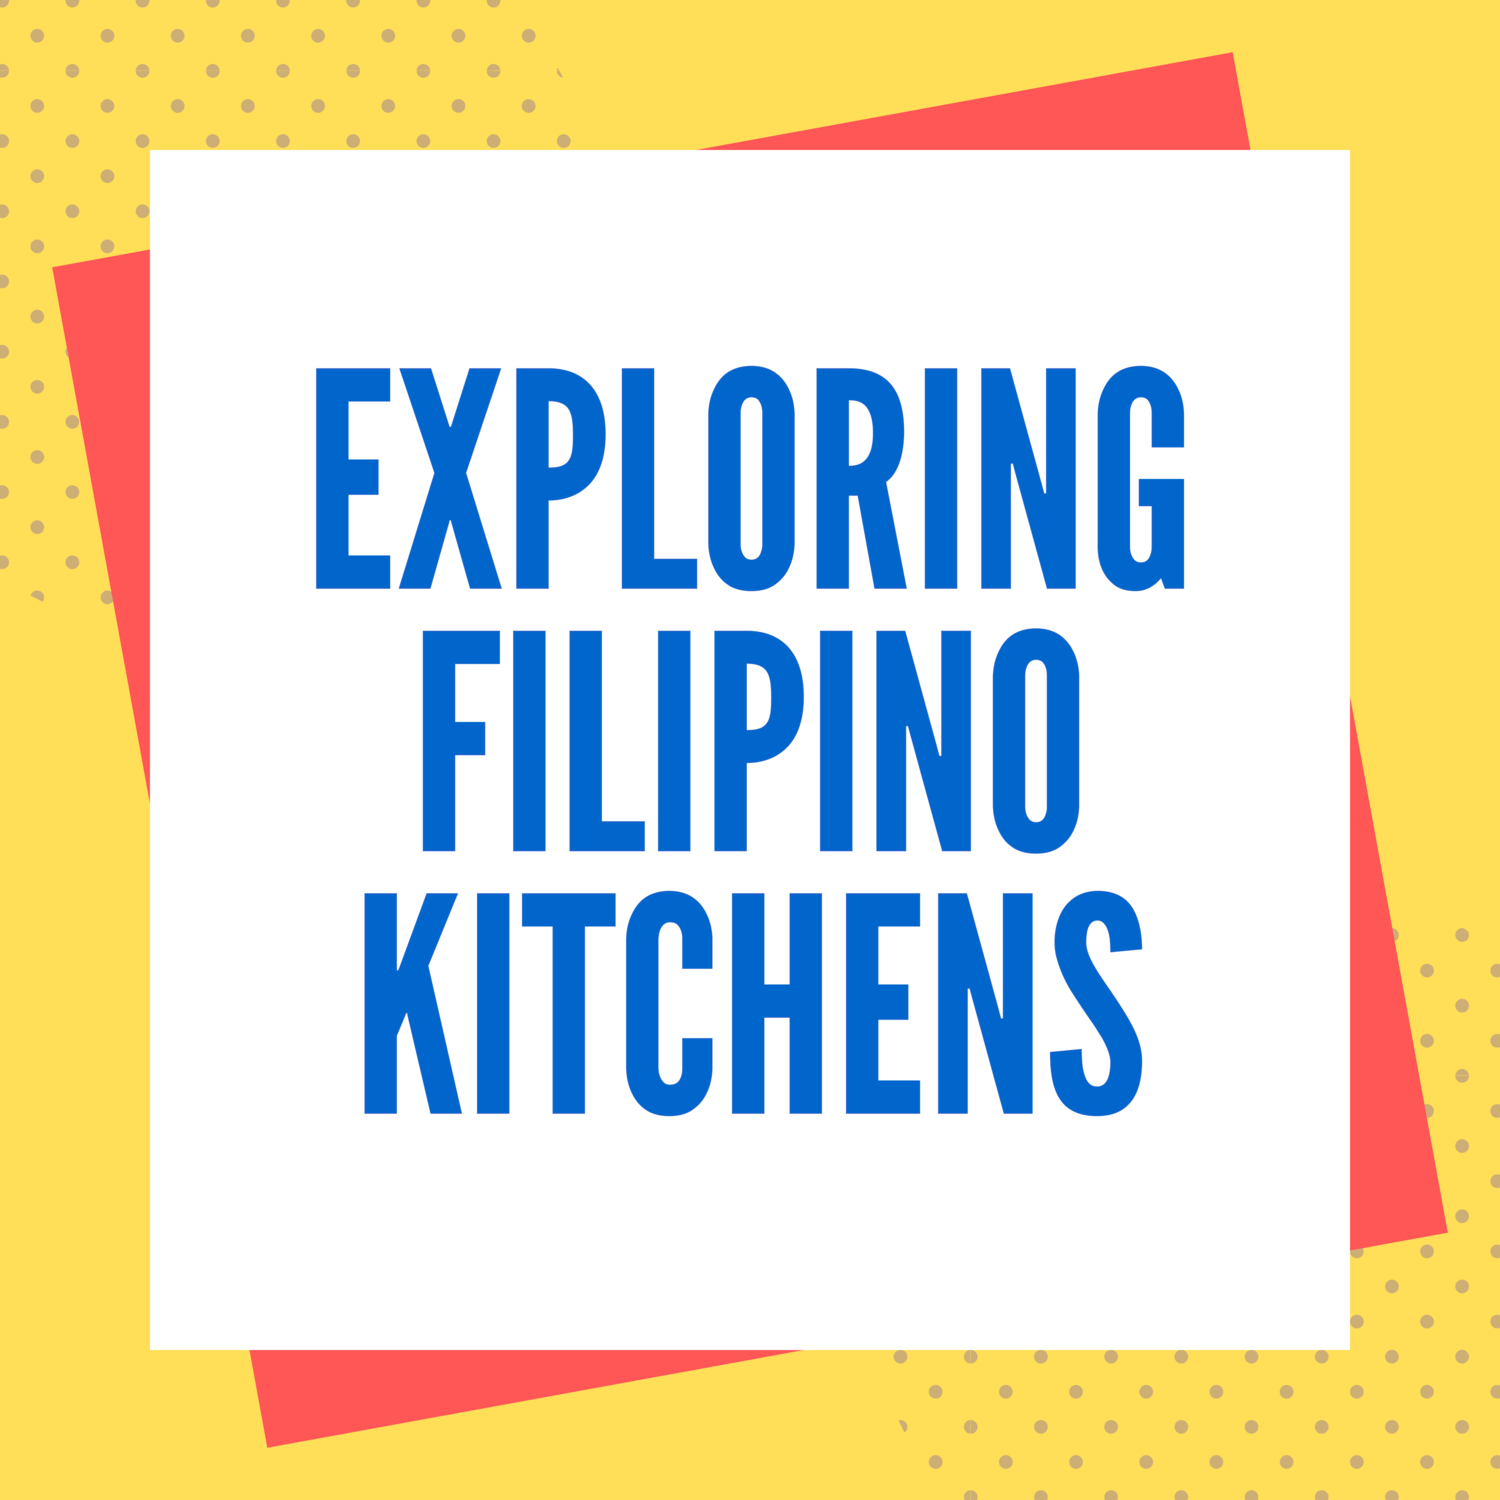 Exploring Filipino Kitchens